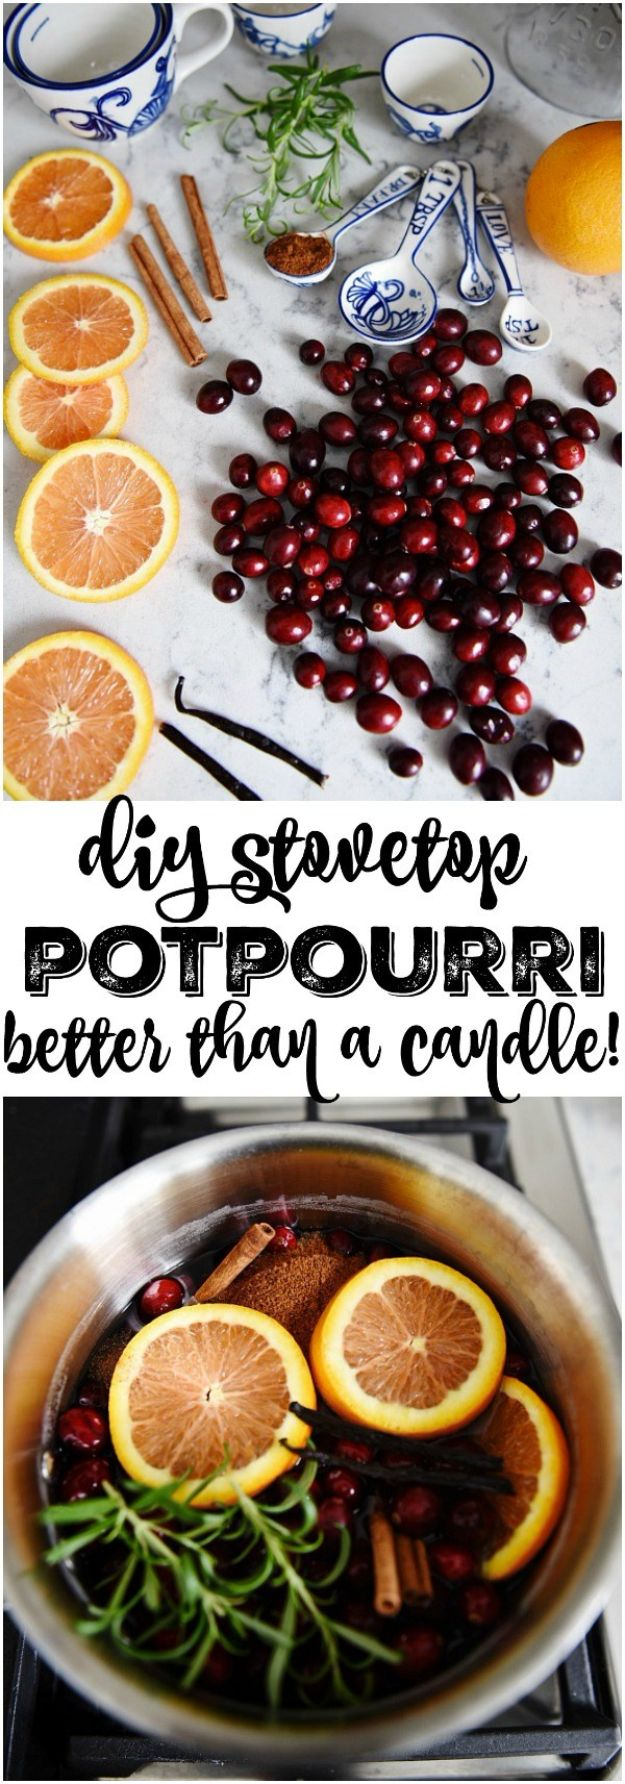 DIY Home Fragrance Ideas - DIY Stovetop Potpourri - Easy Ways To Make your House and Home Smell Good - Essential Oils, Diffusers, DIY Lampe Berger Oil, Candles, Room Scents and Homemade Recipes for Odor Removal - Relaxing Lavender, Fresh Clean Smells, Lemon, Herb http://diyjoy.com/diy-home-fragrance-ideas